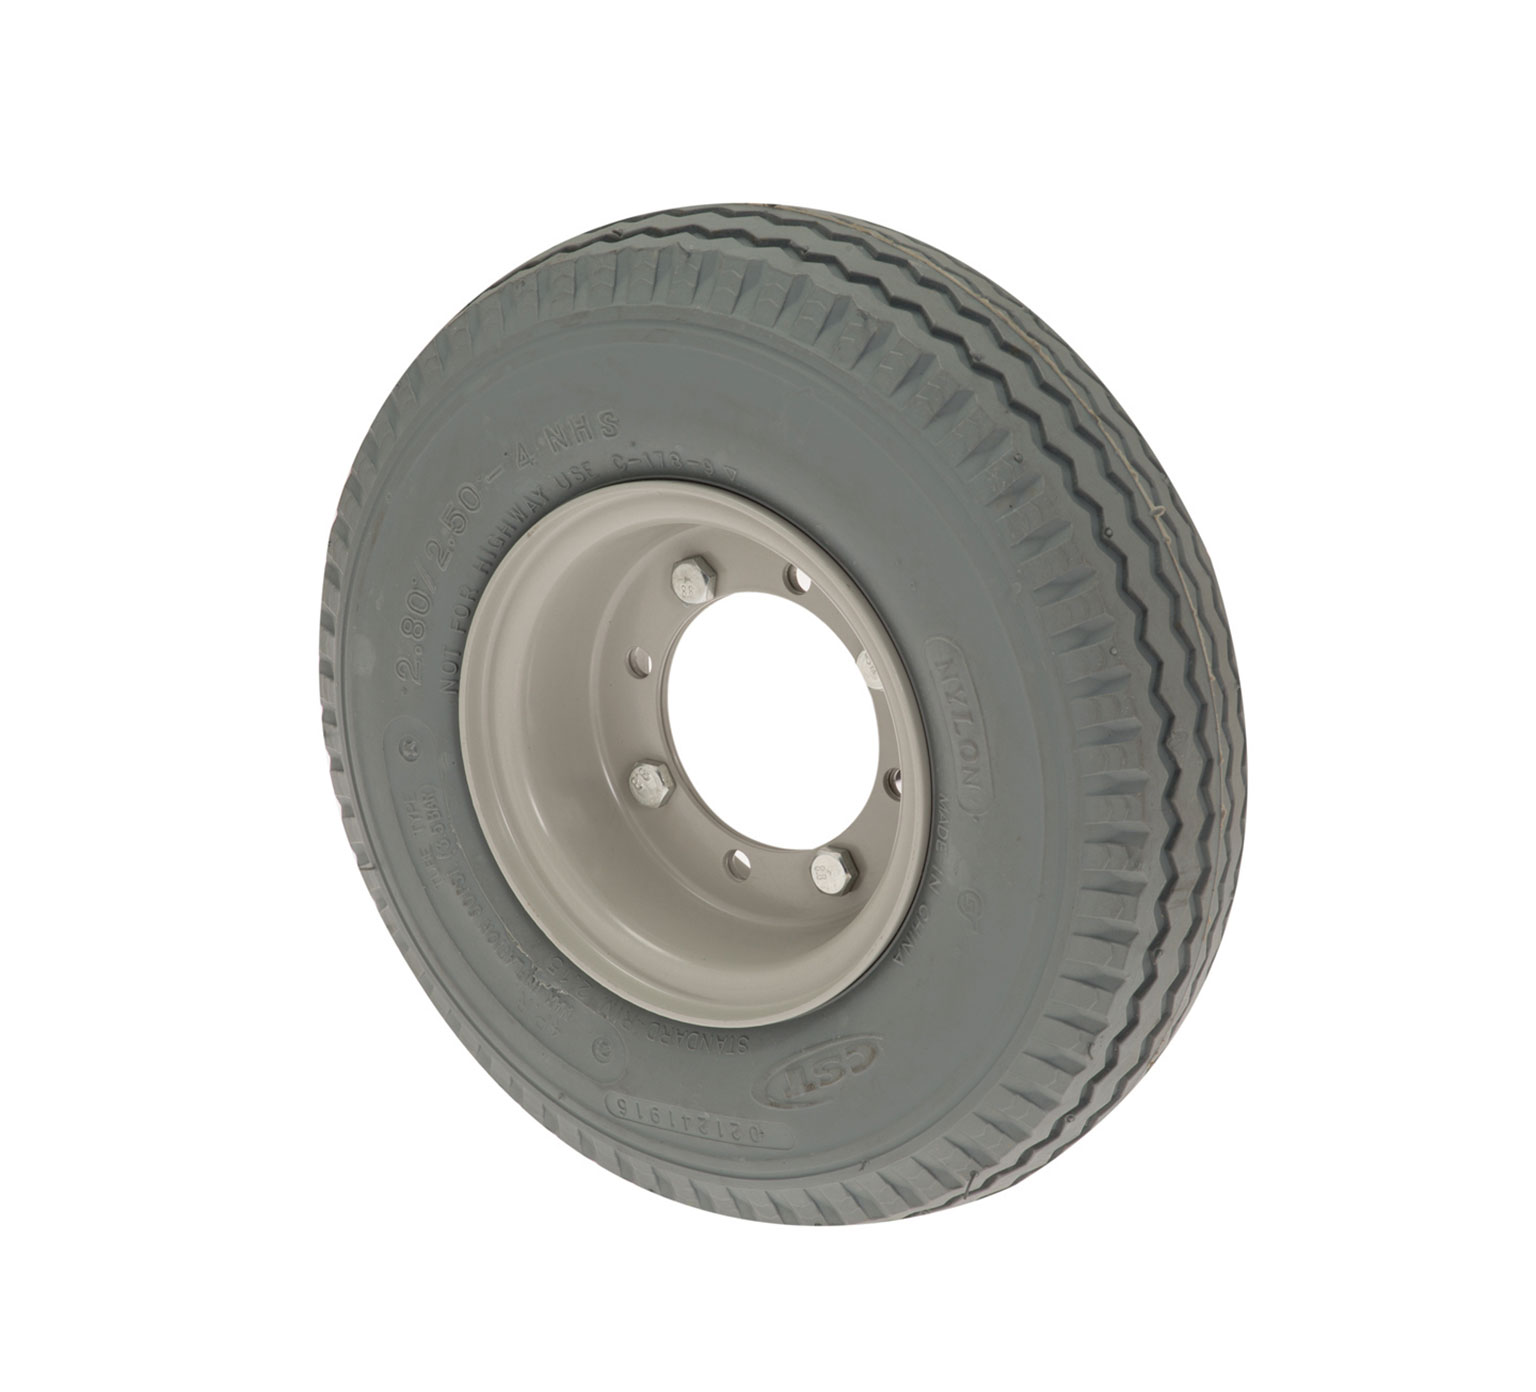 High Density Rubber Foam Filled Tire Assembly